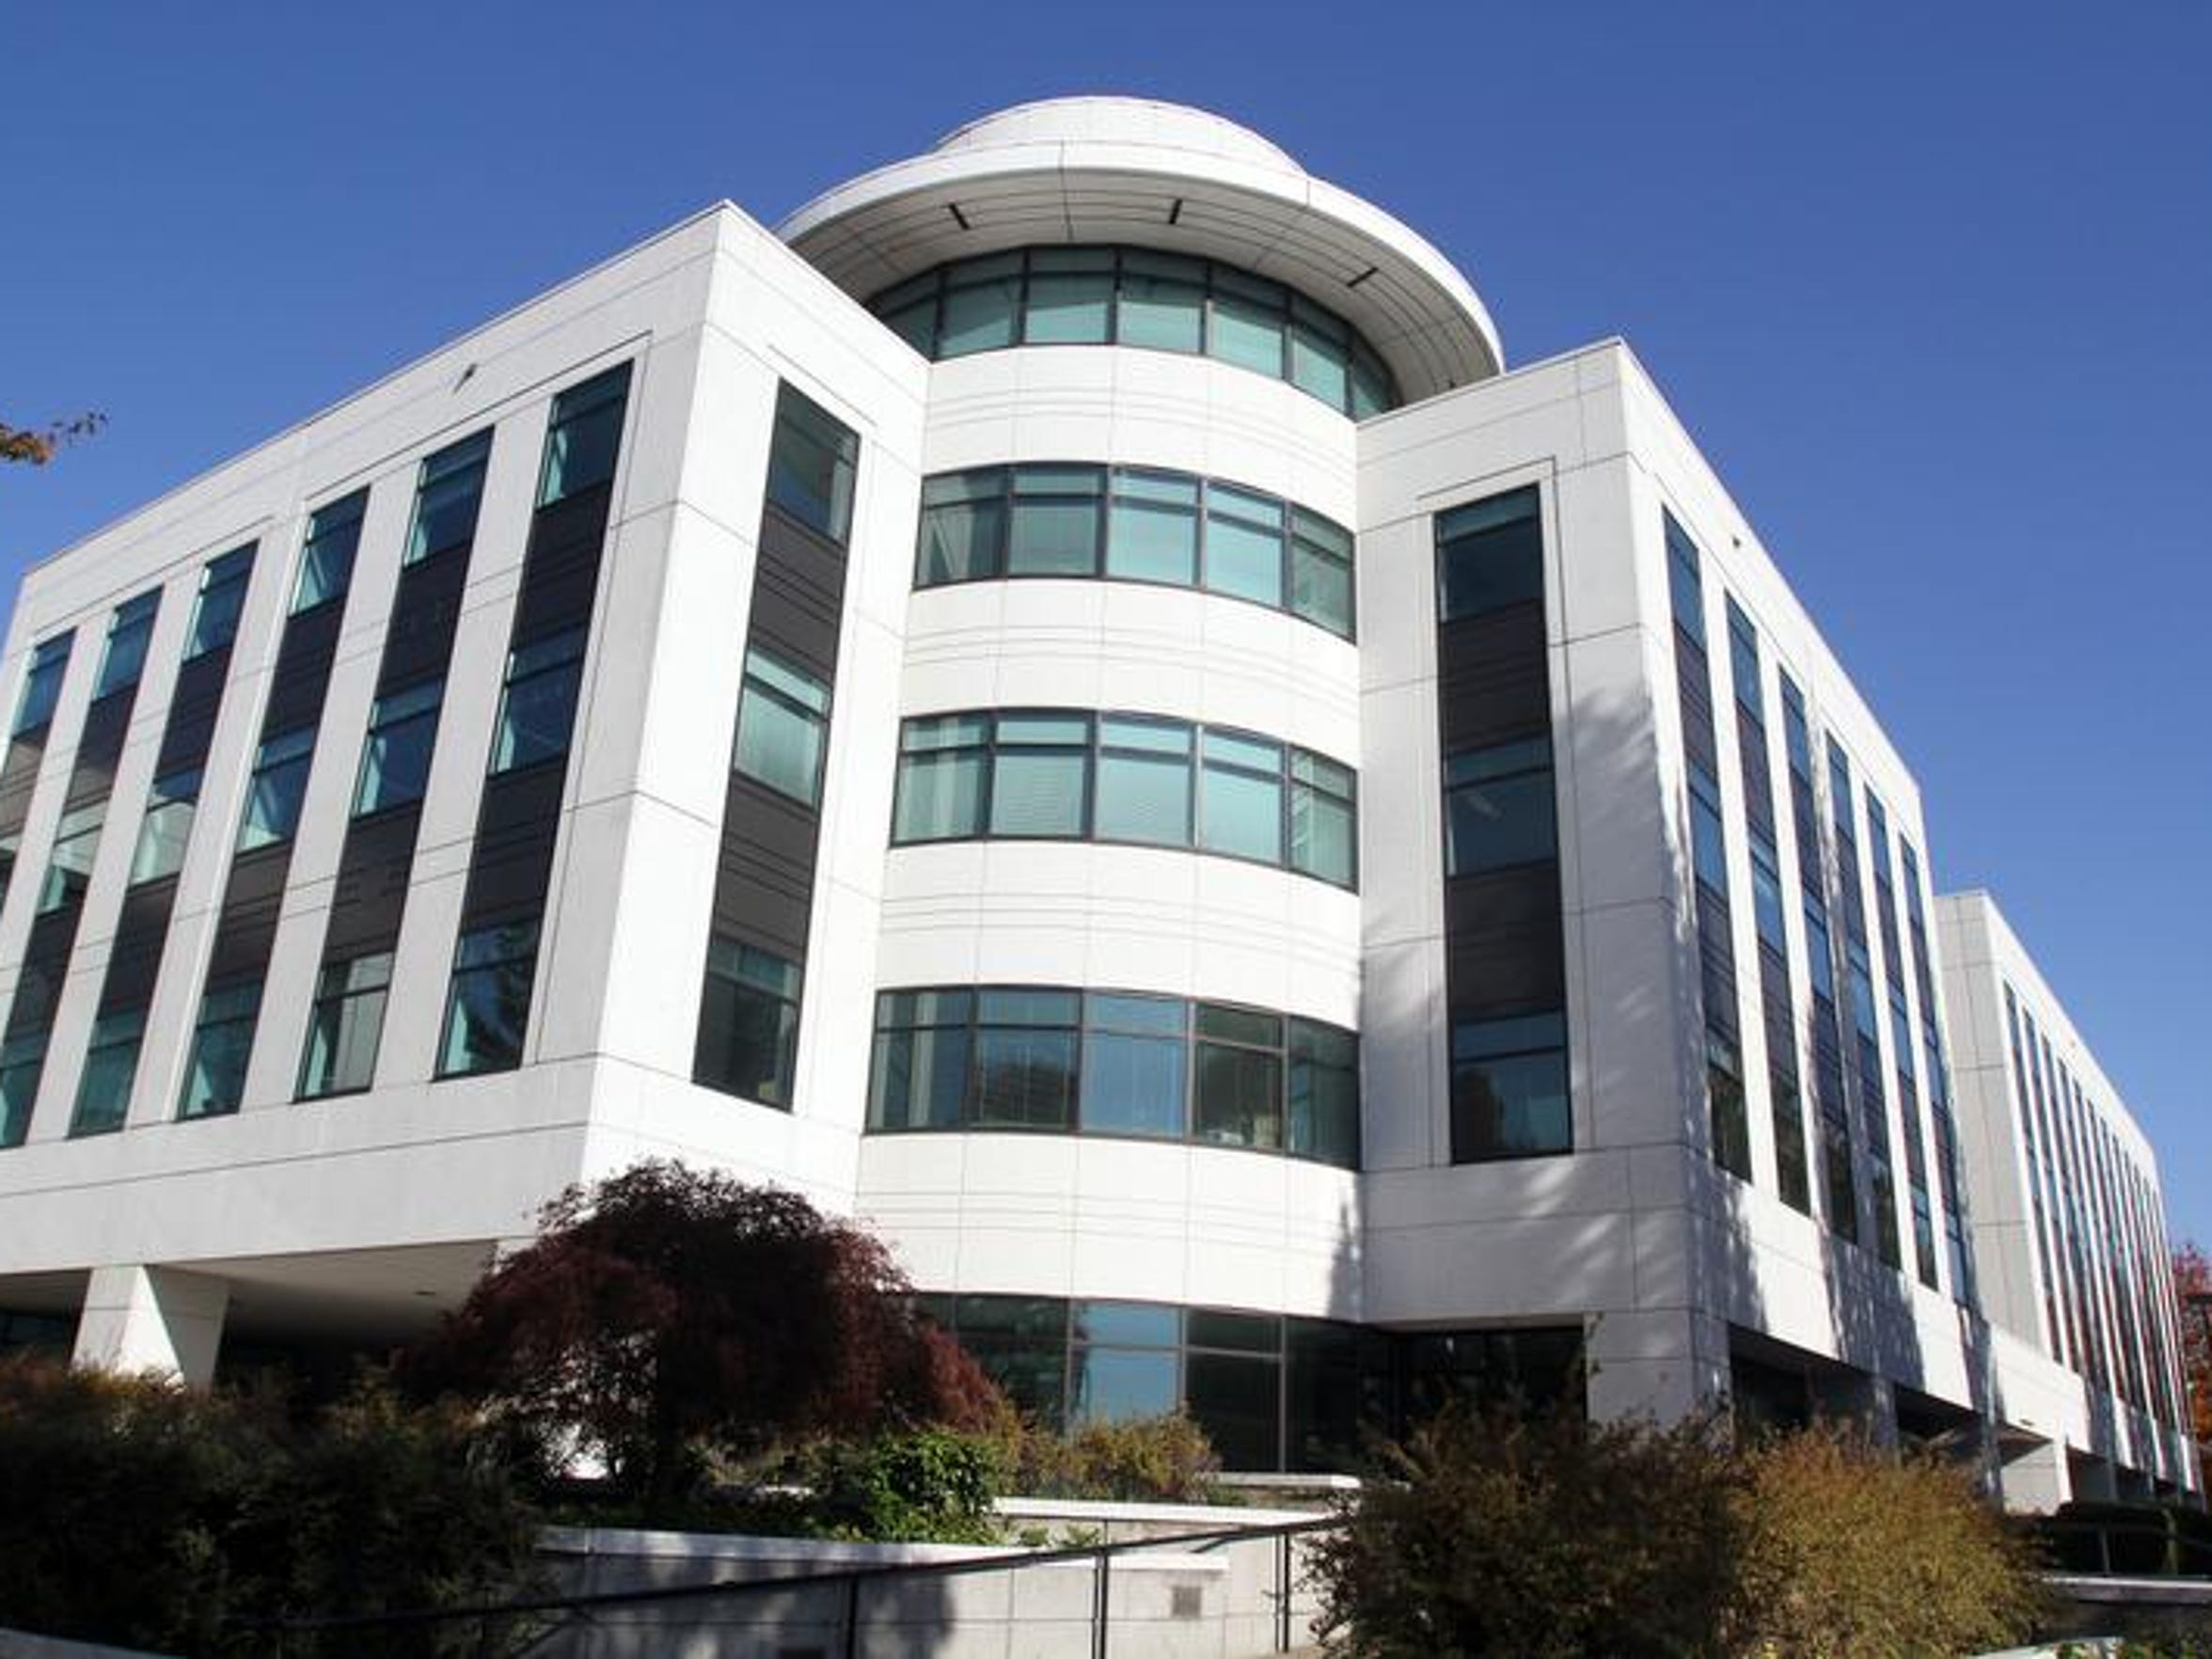 The Oregon Department of Human Services building in Salem.